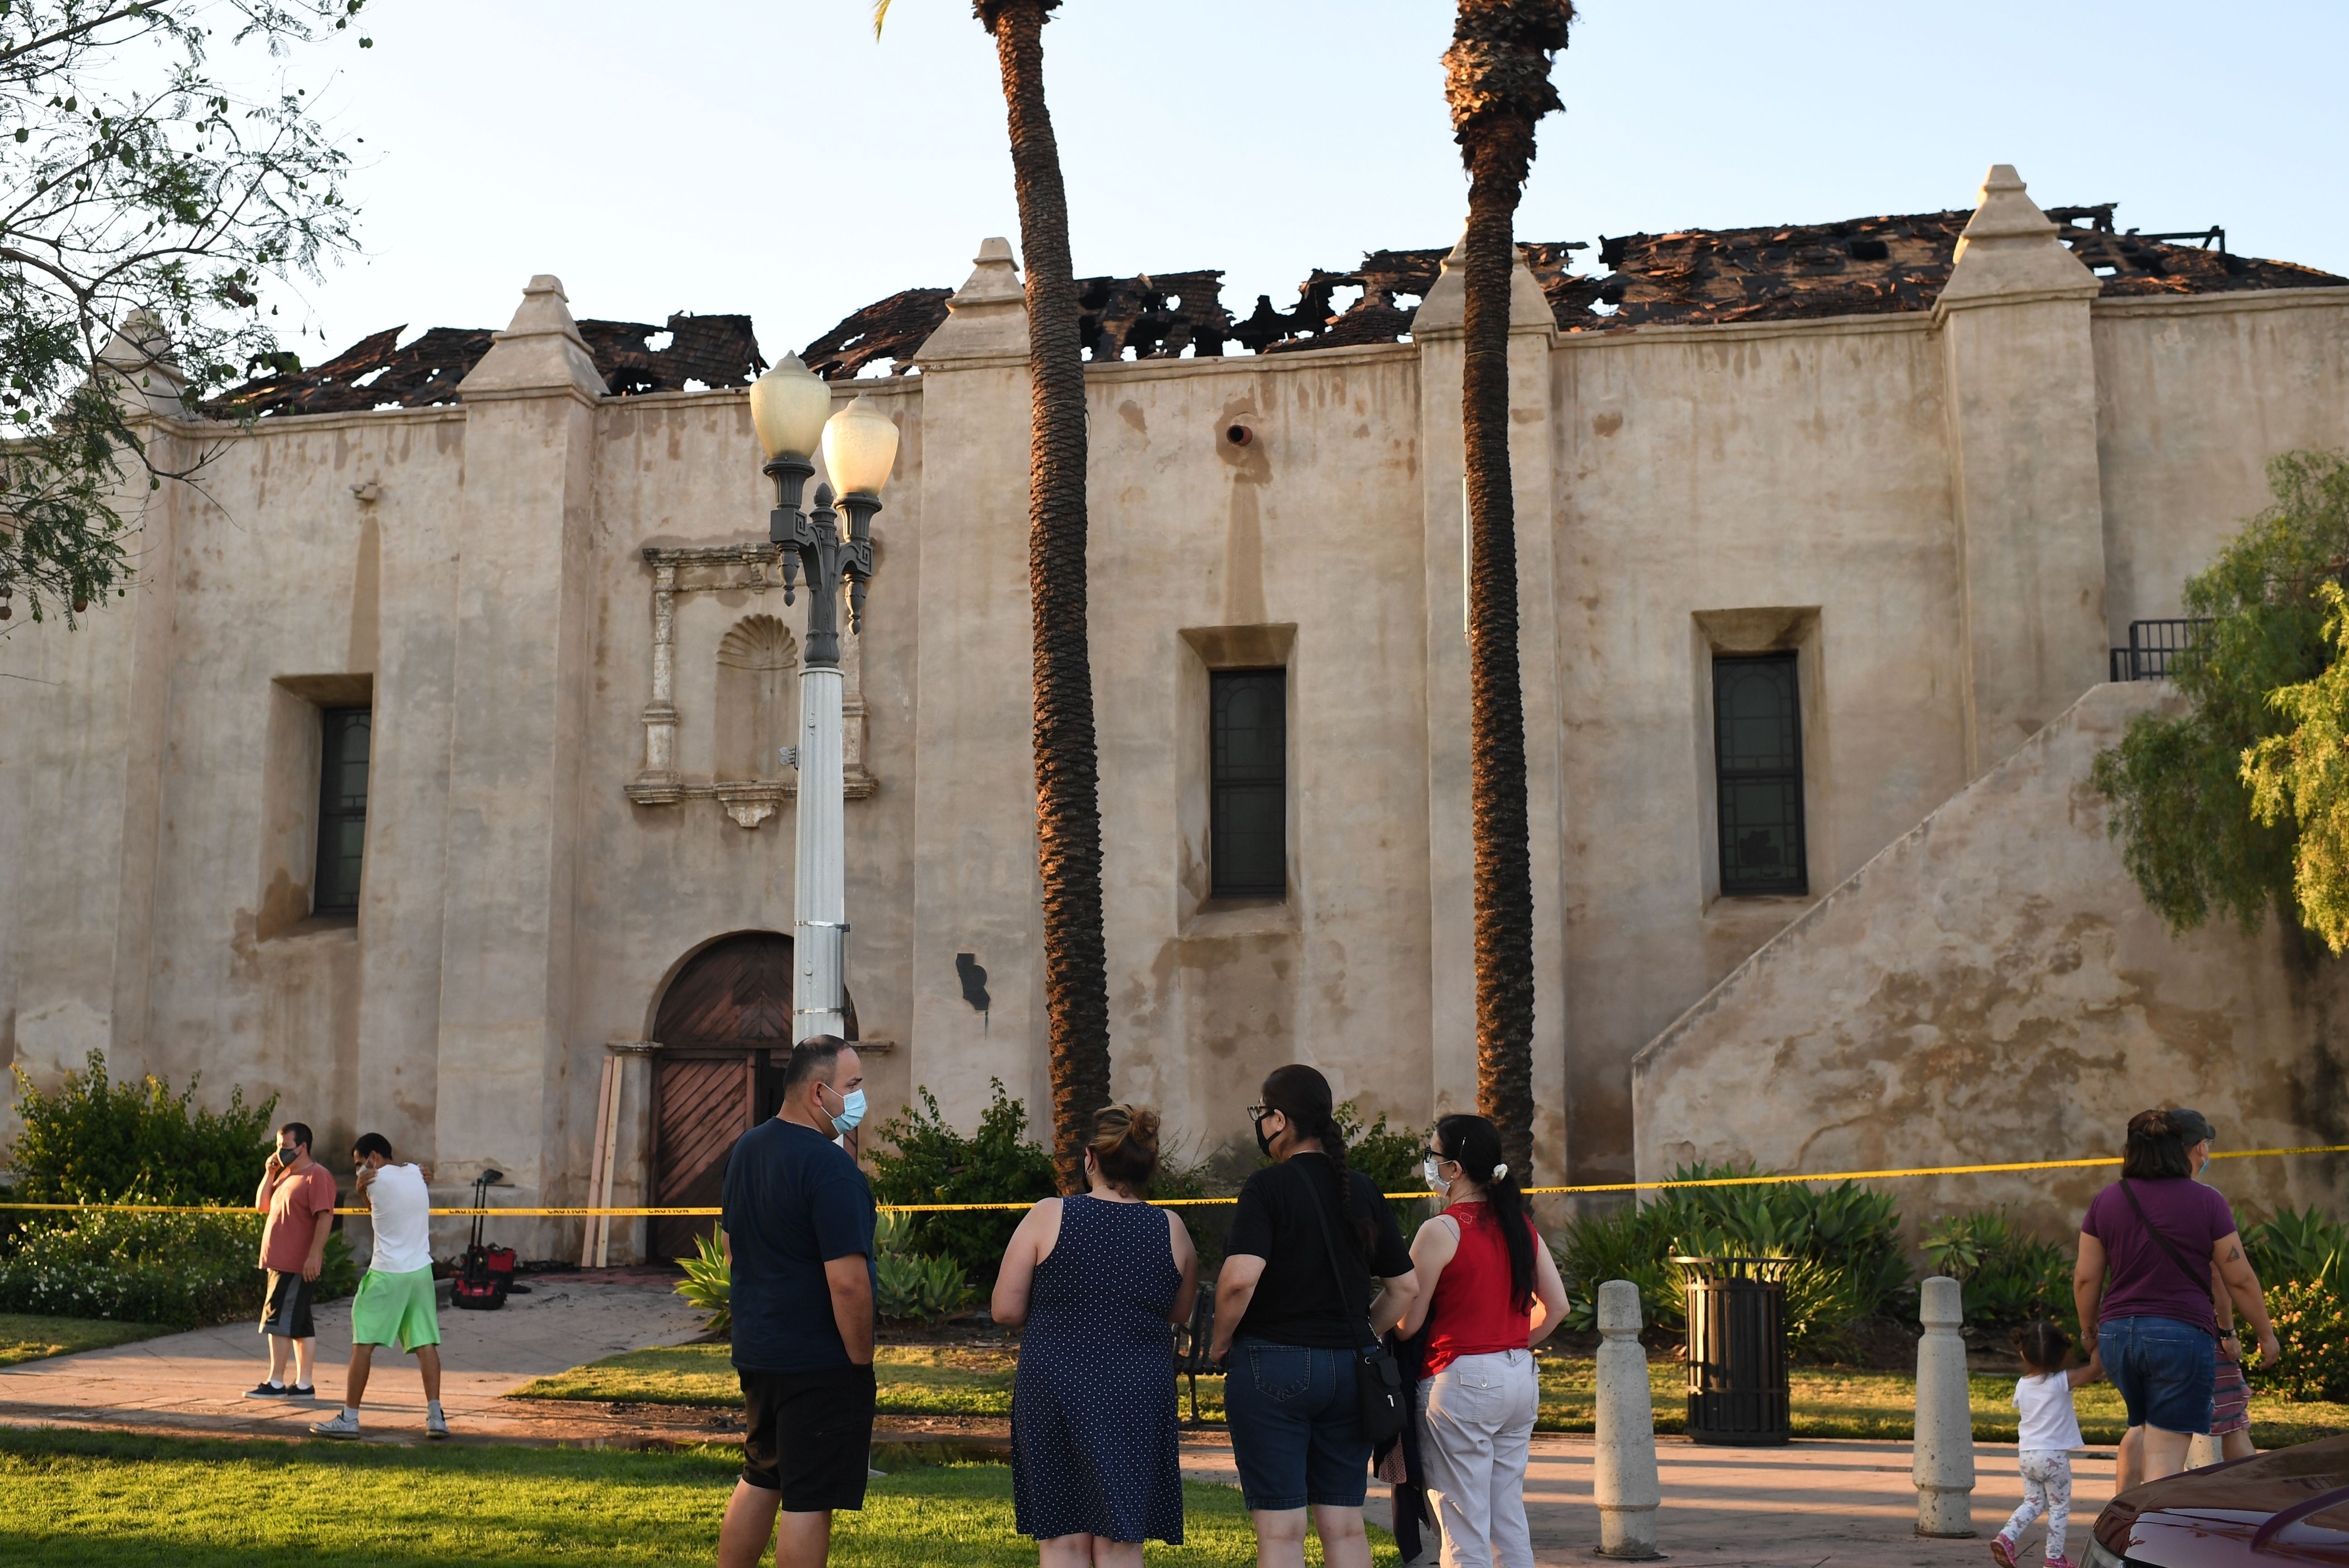 The damaged roof of the San Gabriel Mission is seen after a fire broke out early on July 11, 2020, in San Gabriel, California. - The roof of the mission was completely destroyed while the interior of the structure sustained significant damage, US media reported. An investigation into the cause of the fire is underway, according to the San Gabriel Police Department. (Photo by ROBYN BECK/AFP via Getty Images)